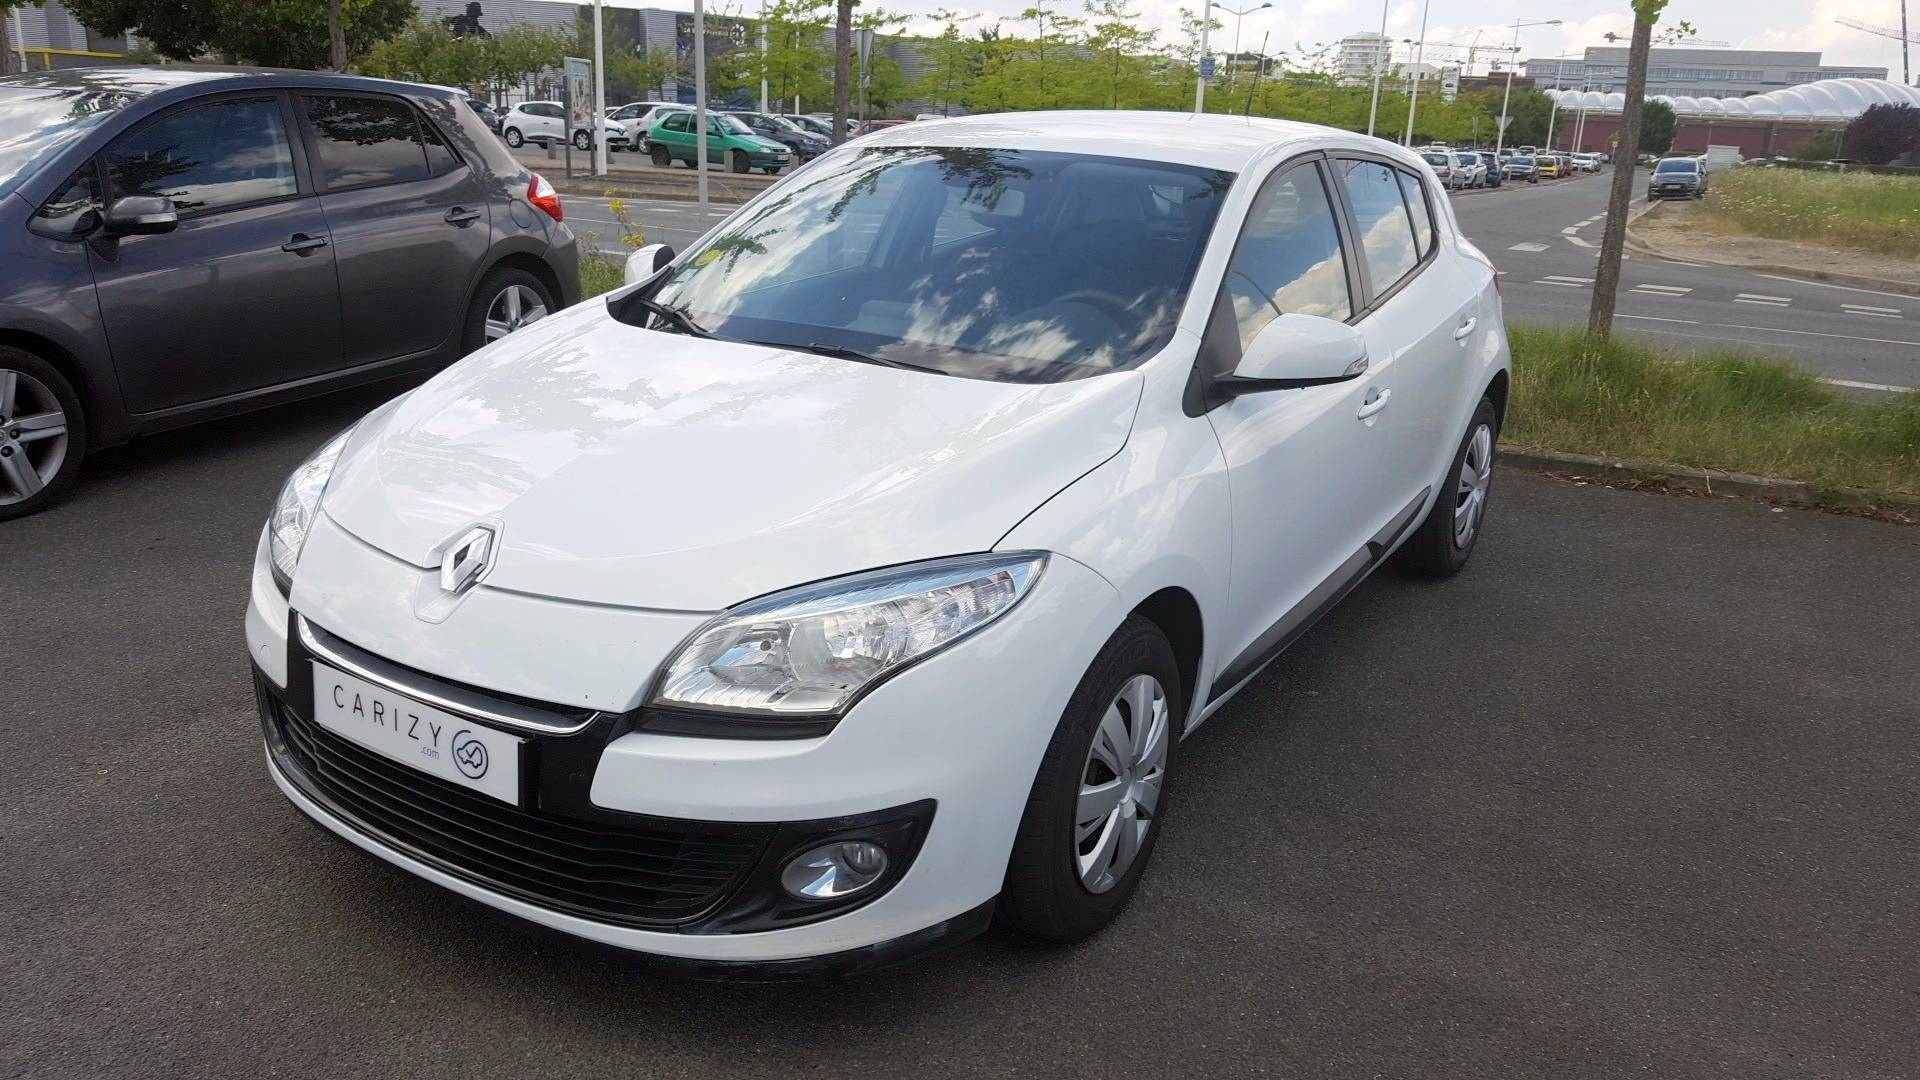 renault megane d 39 occasion 1 5 dci 110 energy limited tours carizy. Black Bedroom Furniture Sets. Home Design Ideas